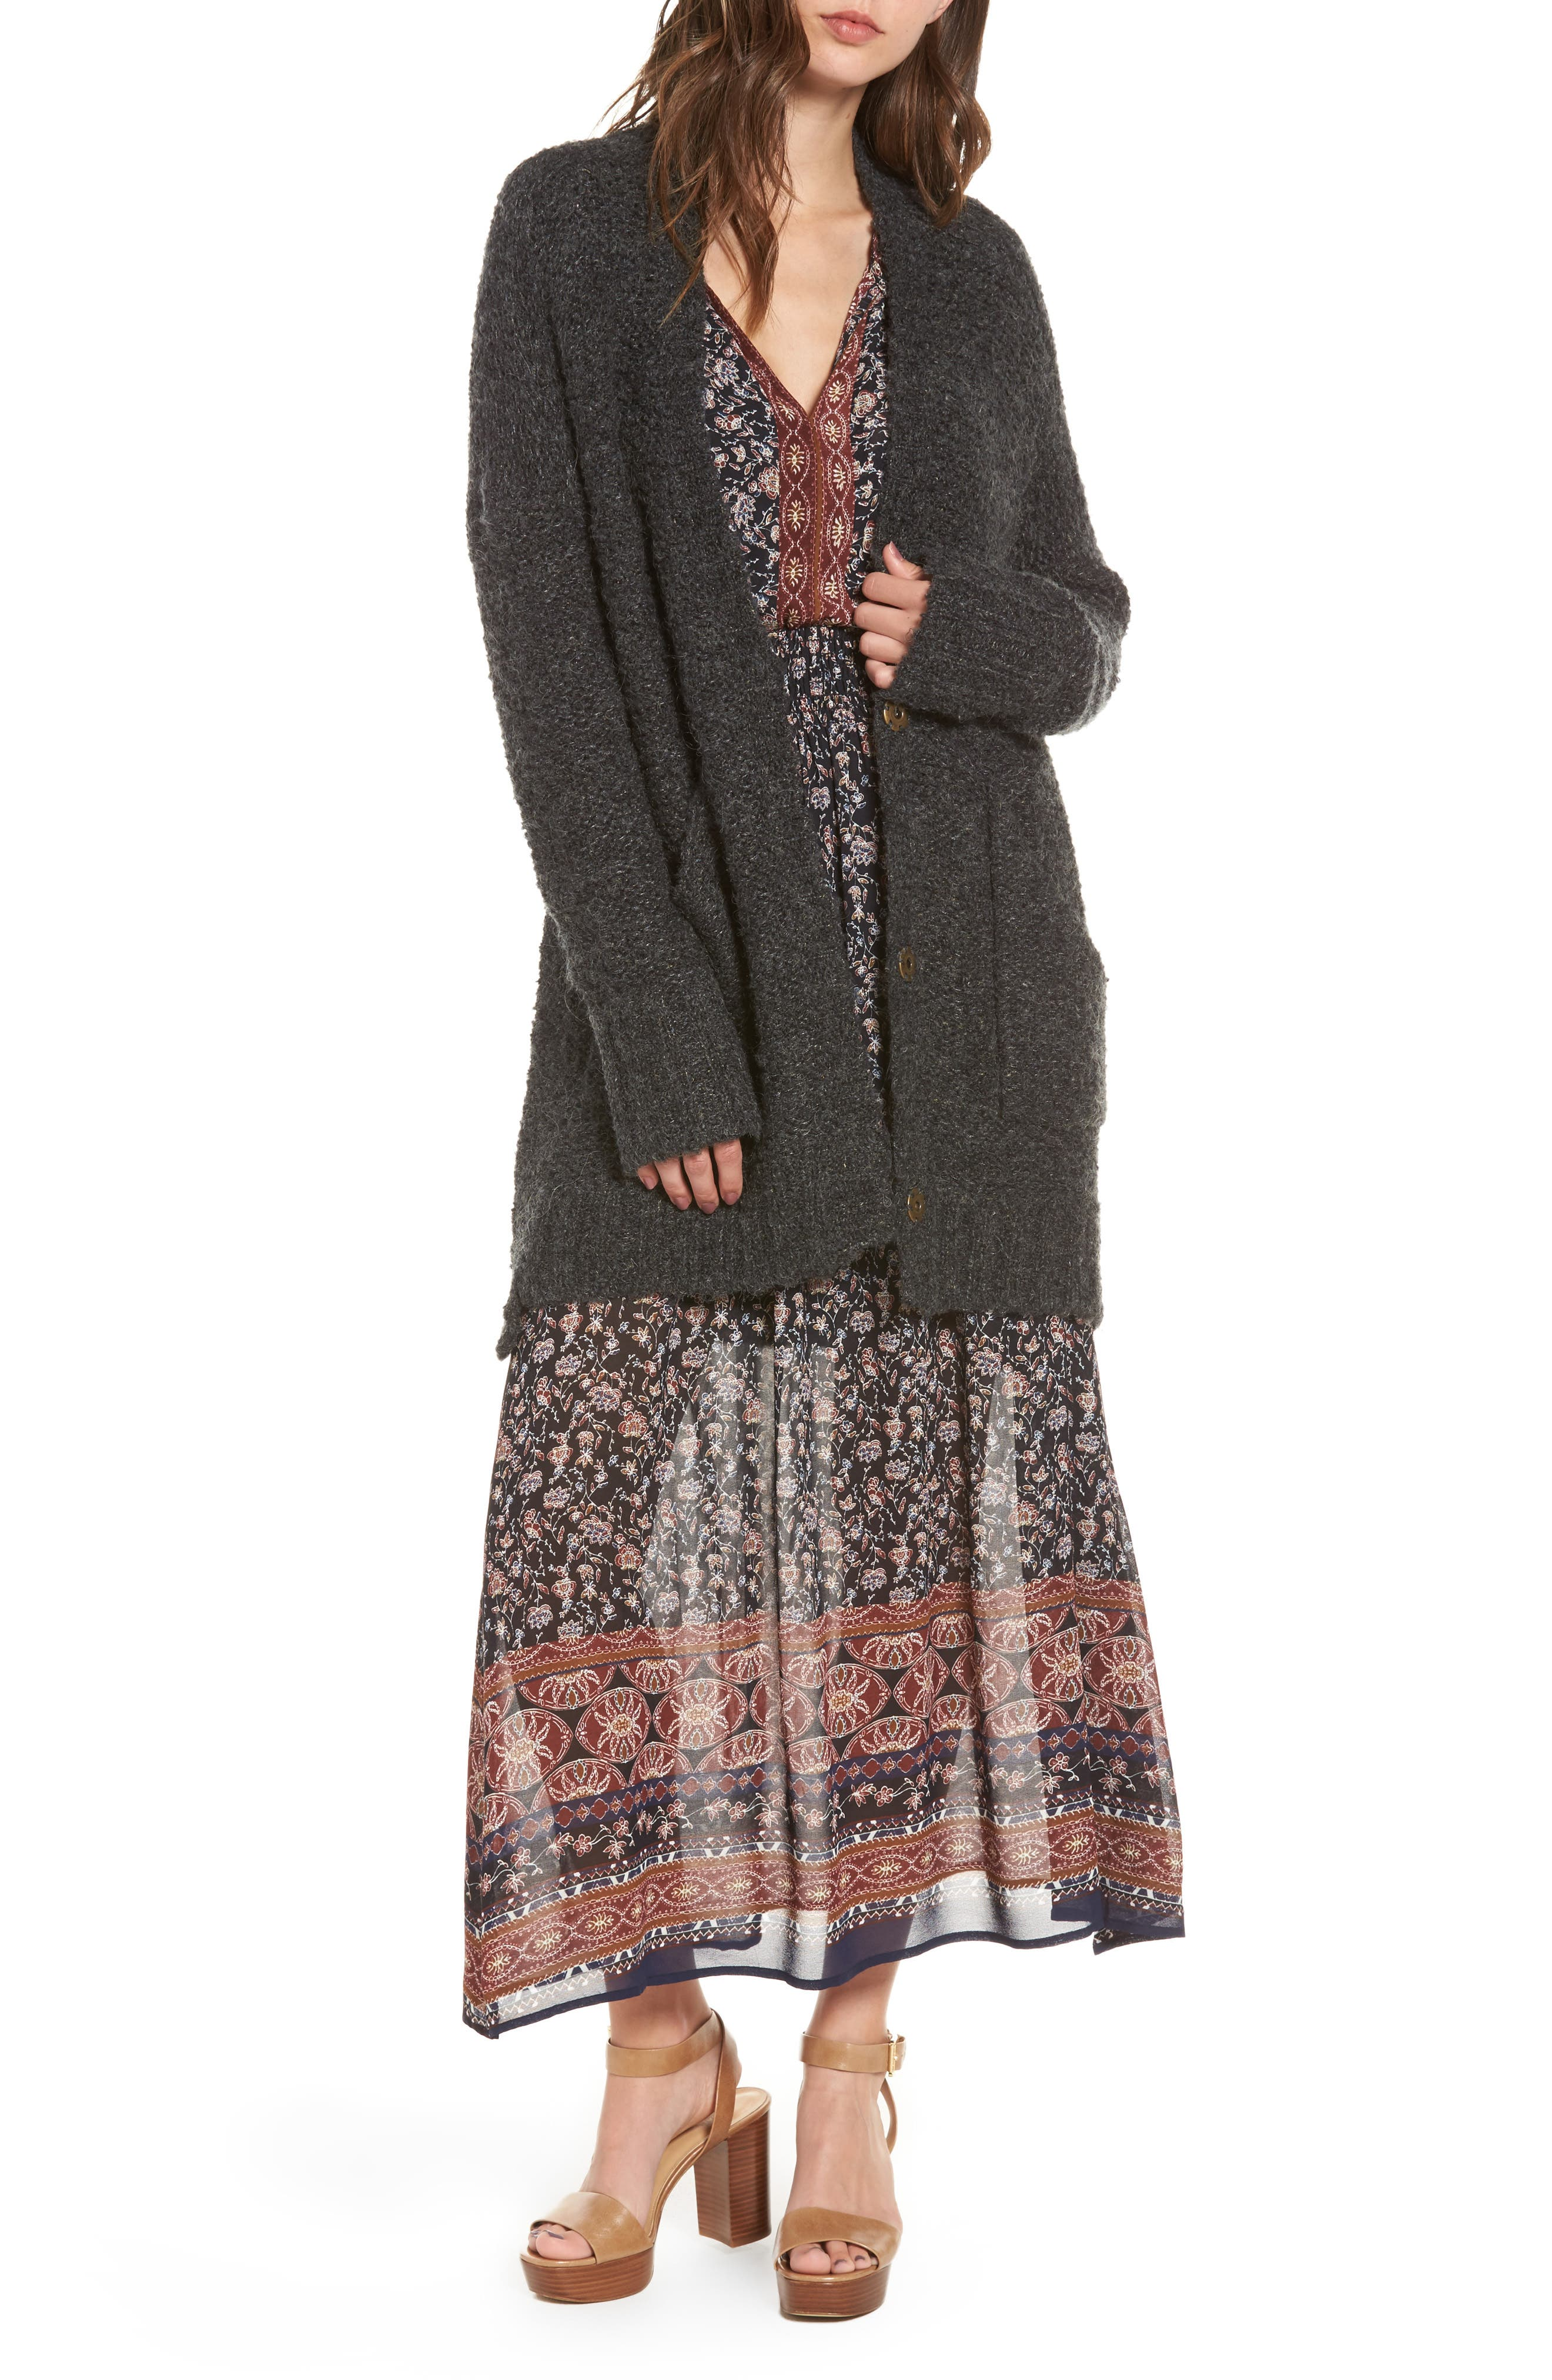 Main Image - ASTR the Label Fallon Cardigan